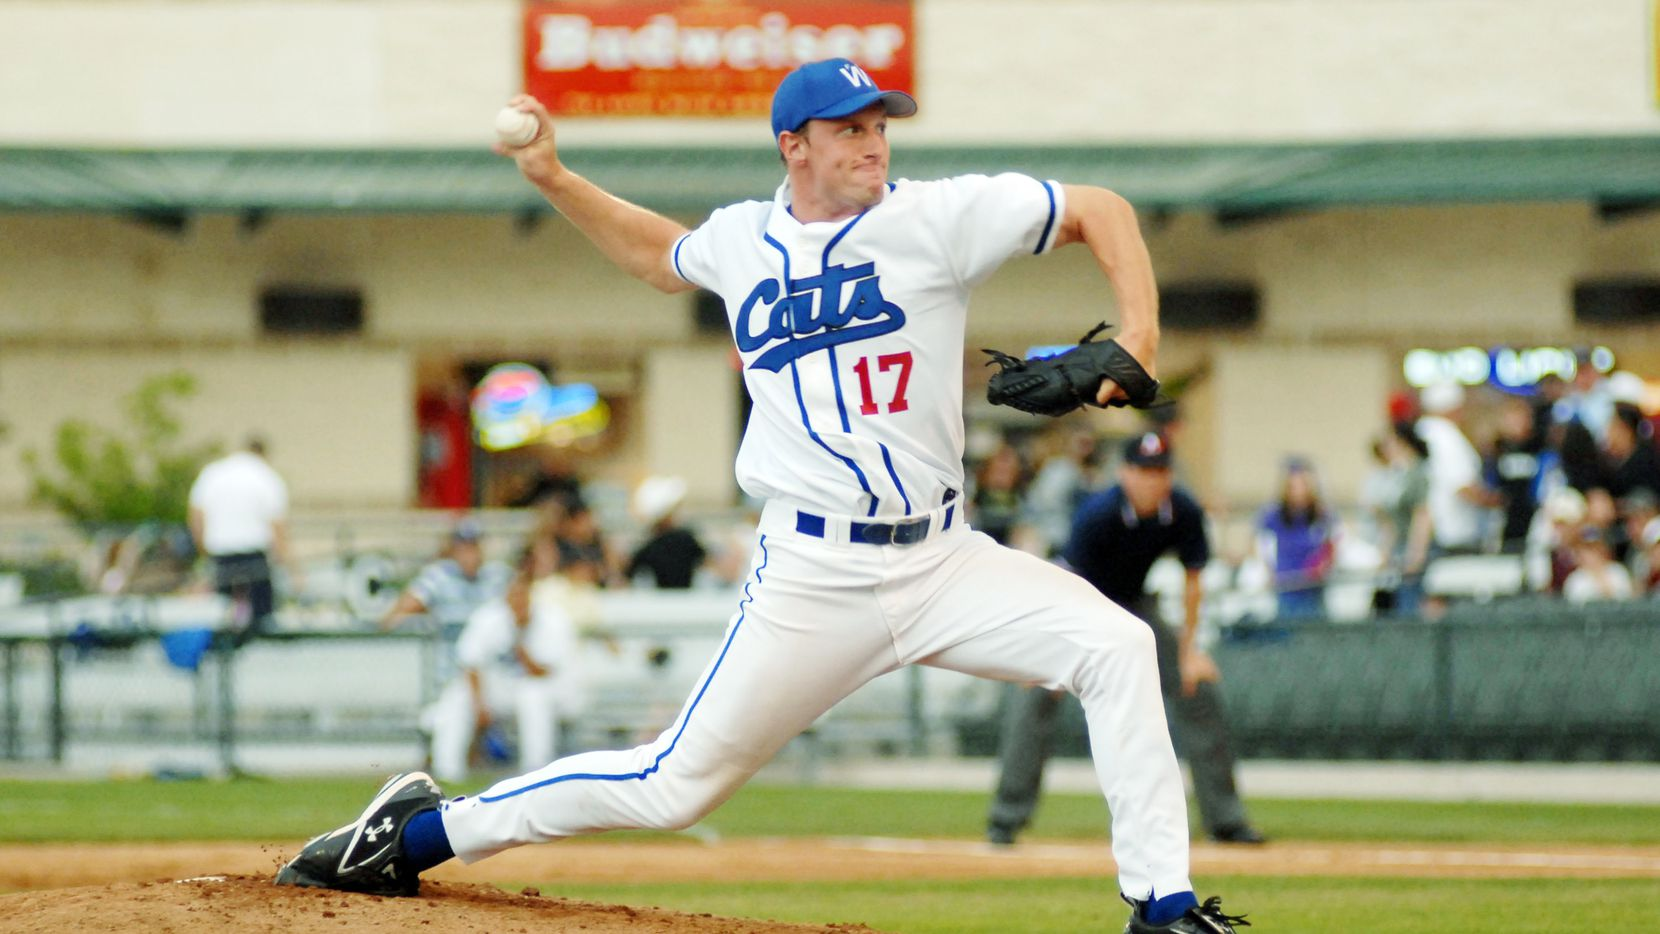 FILE - Fort Worth Cats pitcher Max Scherzer is pictured during the second inning of a game against Shreveport on Saturday, May 12, 2007.